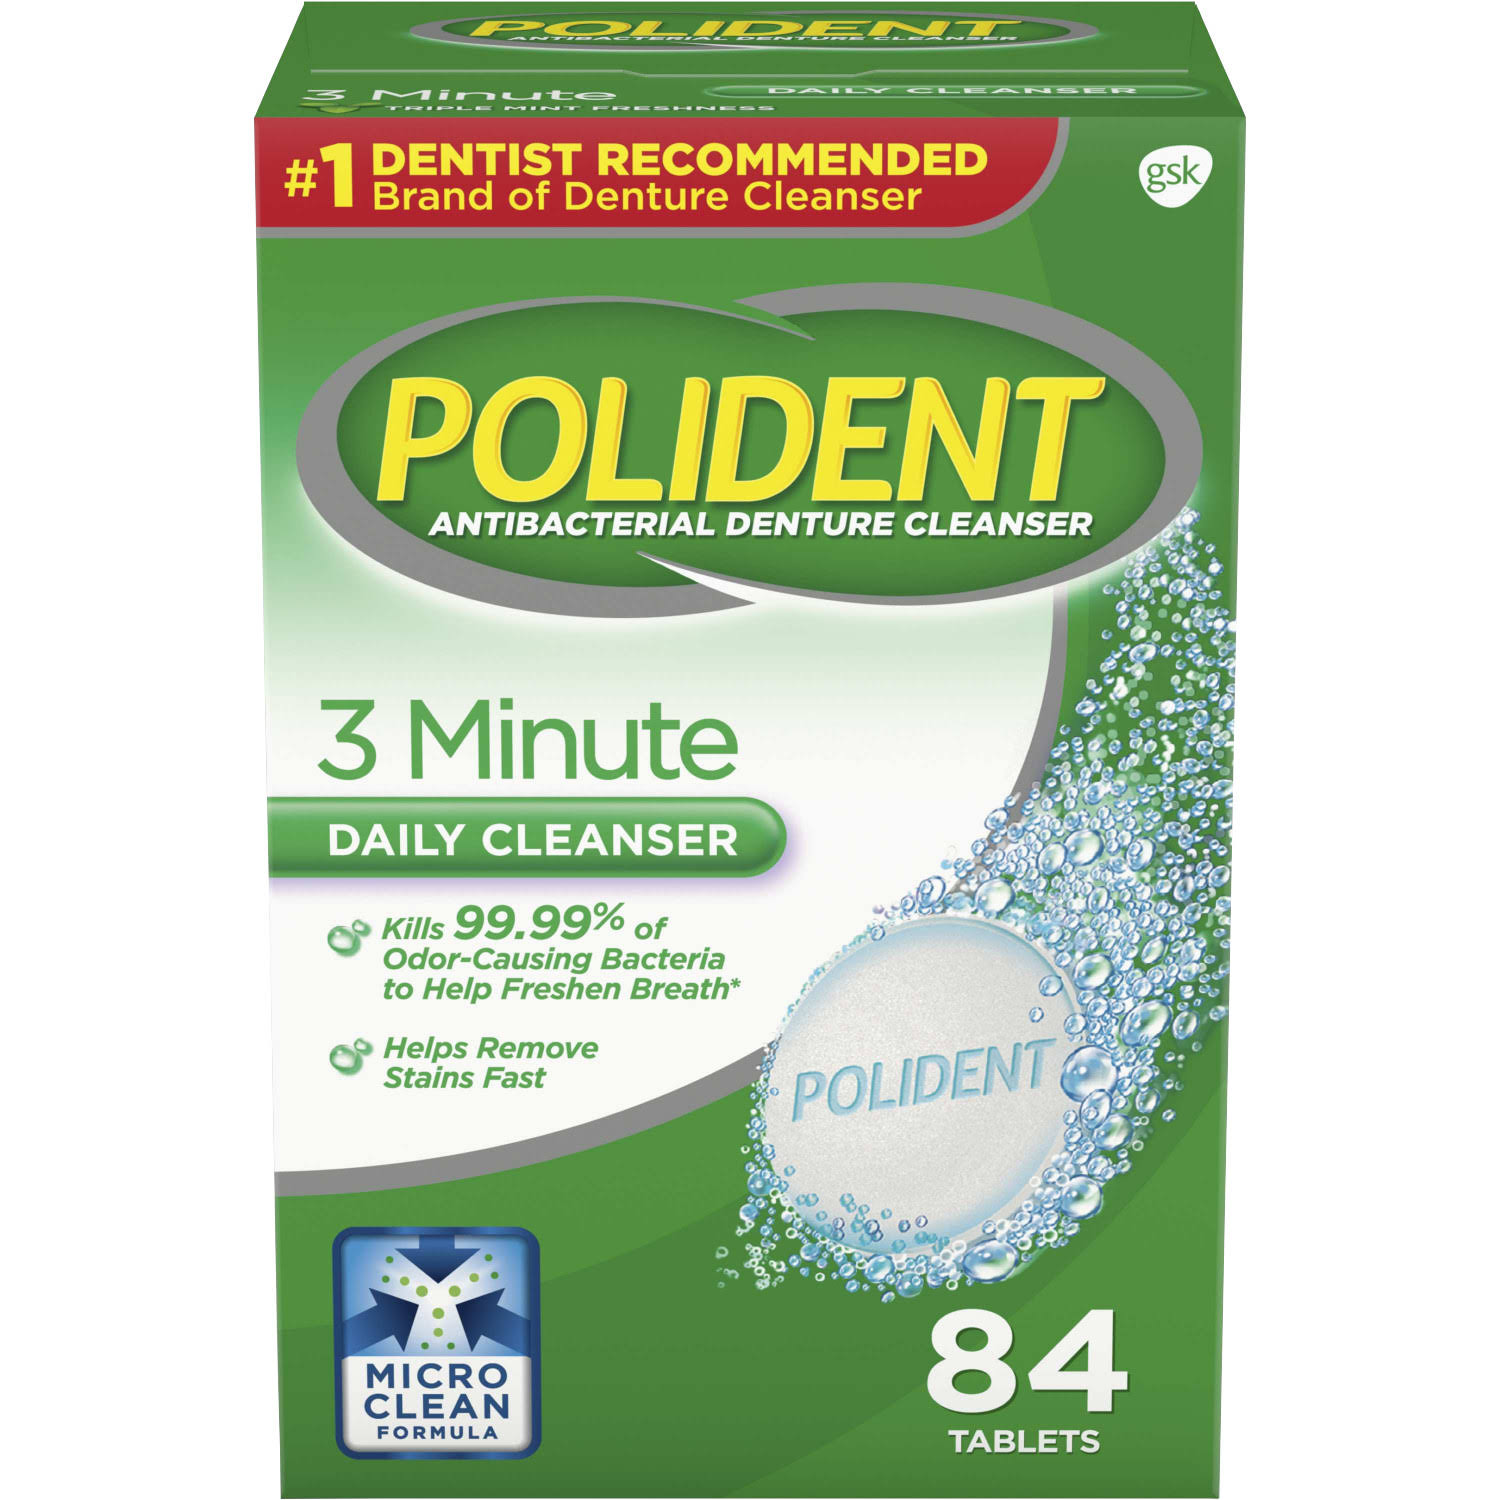 Polident 3 Minute AntiBacterial Denture Cleanser Tablets - Triple Mint, 84 Tablets